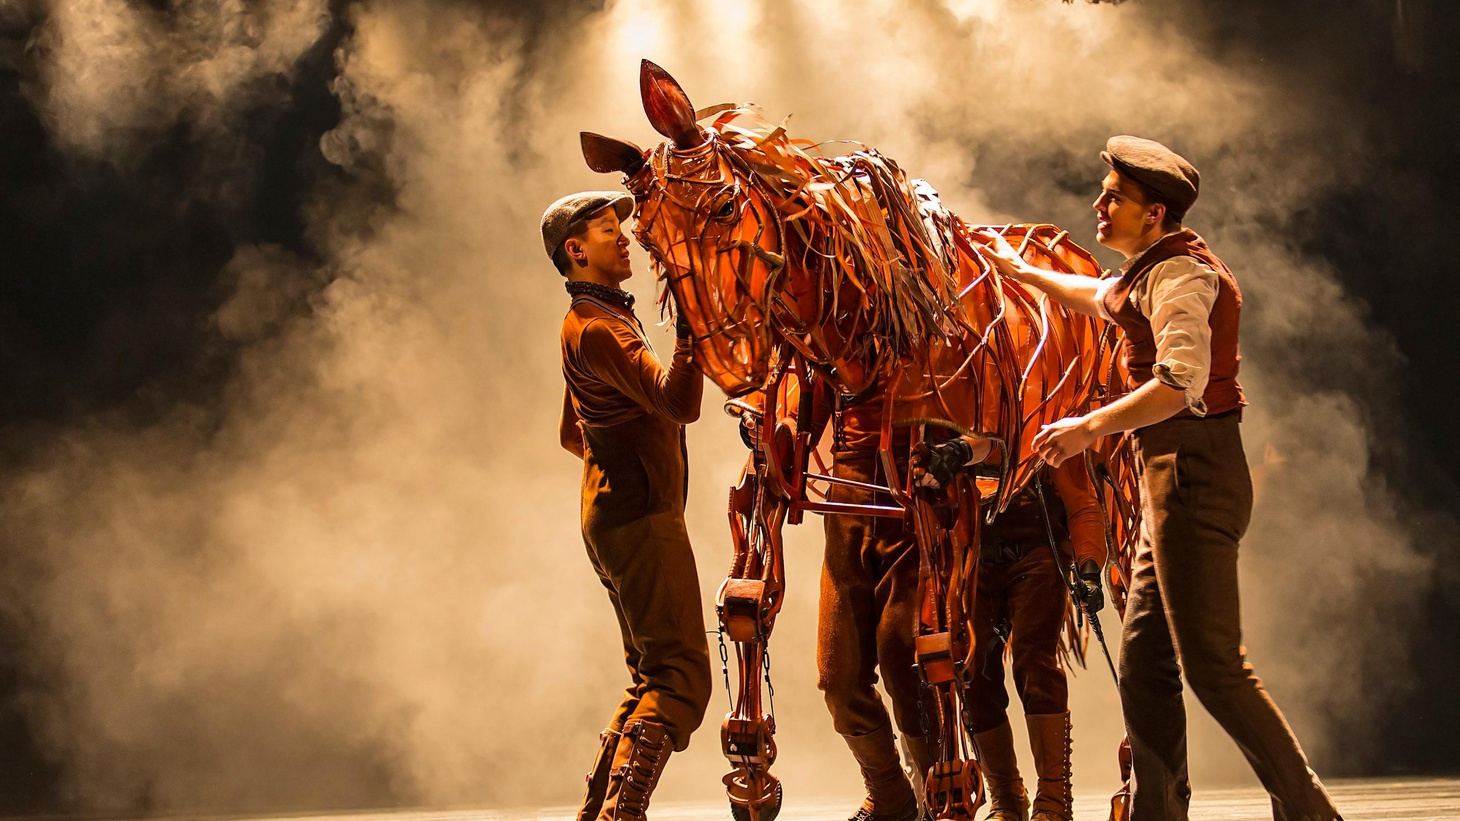 Anthony Byrnes on a simple 'boy and his horse' story and the theatrical magic created by the National Theatre of Great Britain and the Handspring Puppet Company.